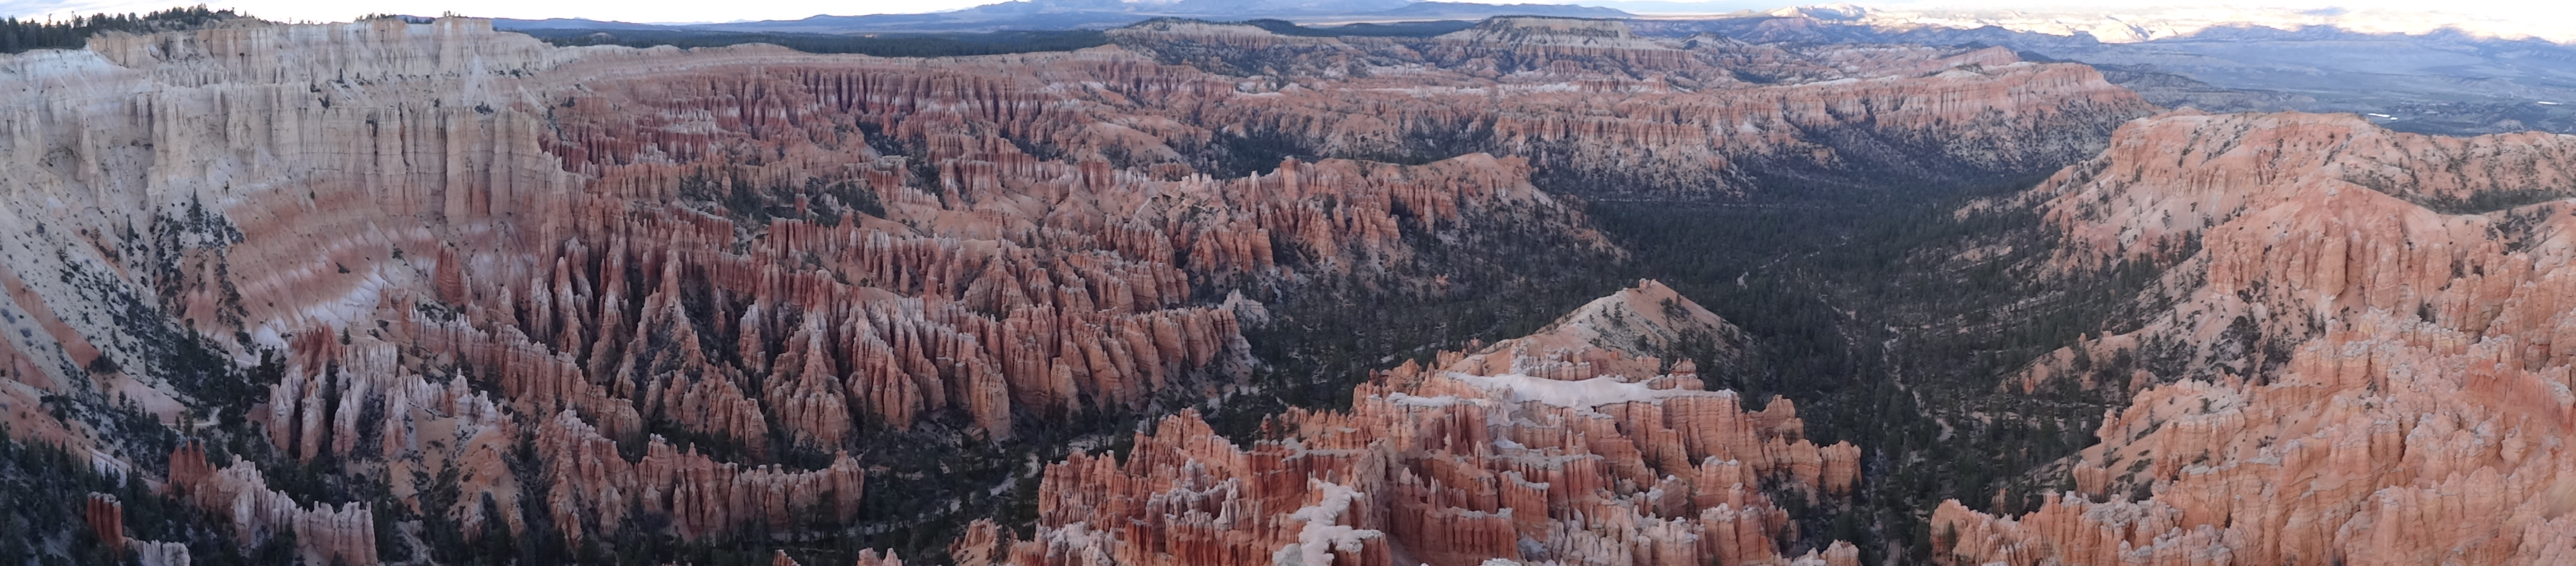 Bryce Canyon from Inpsiration Point 1